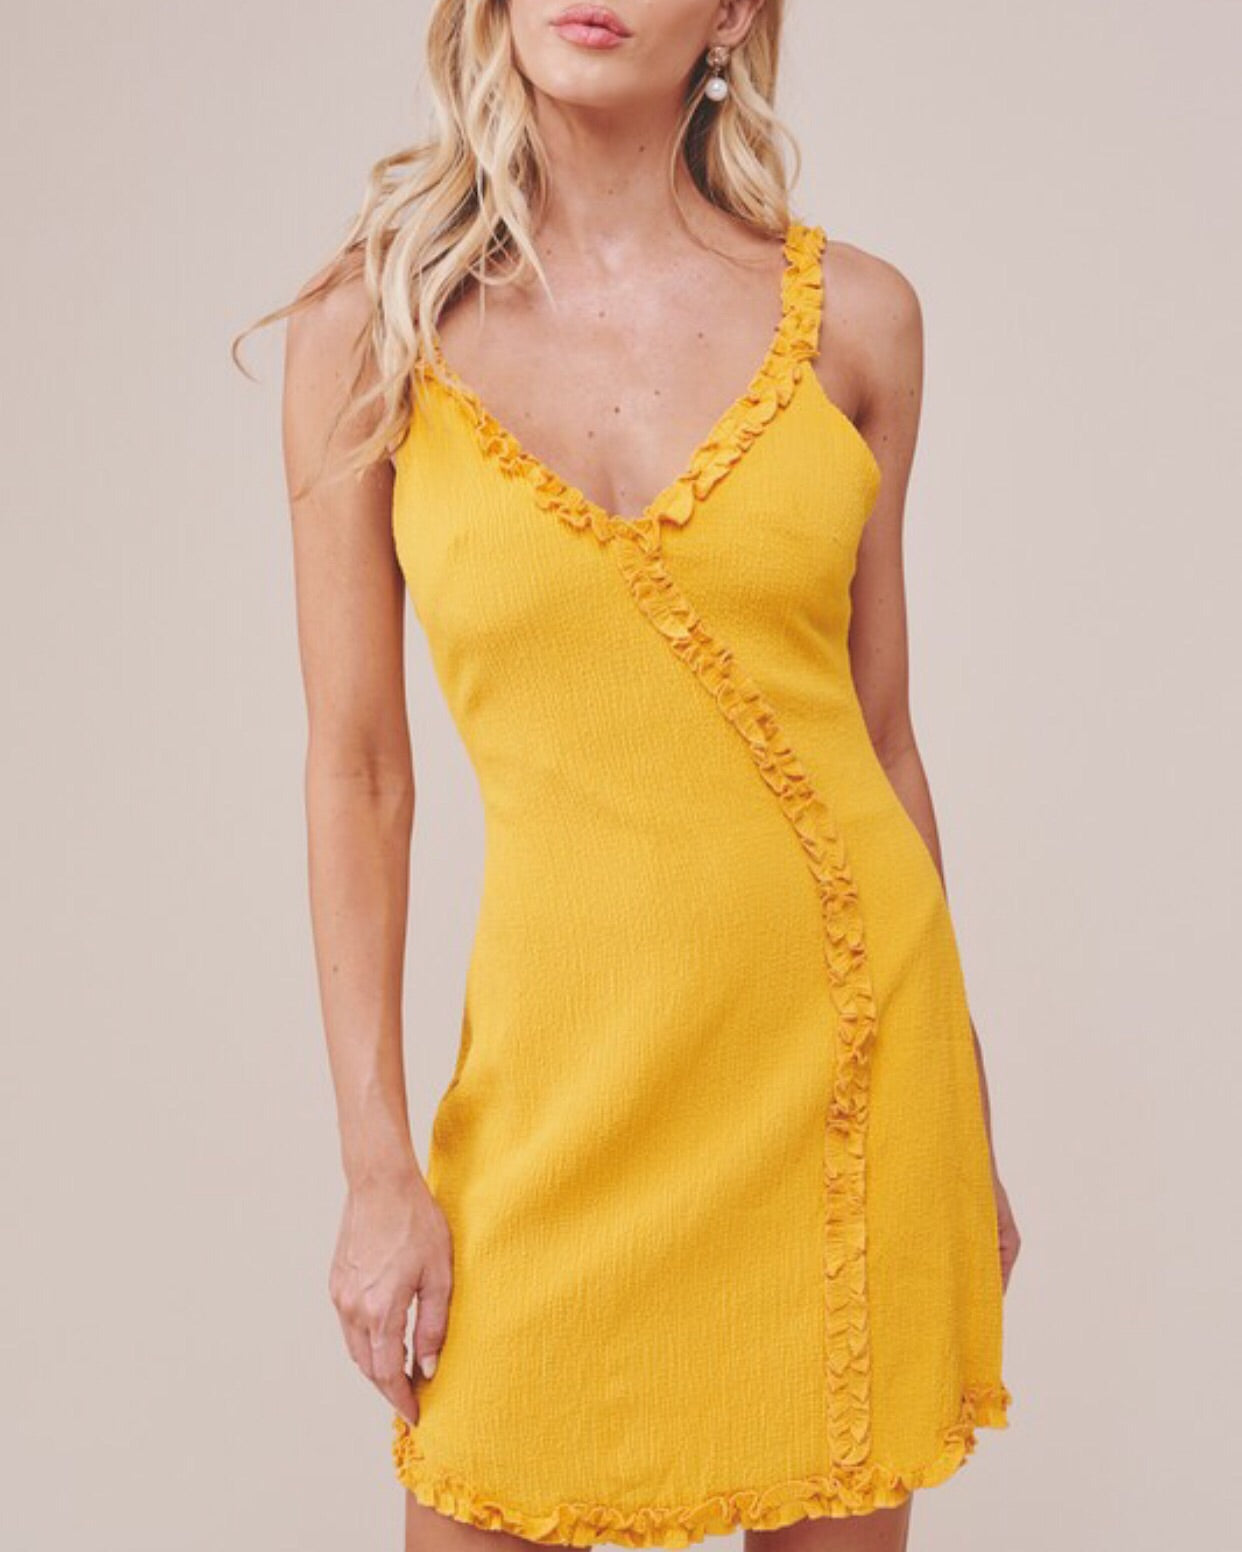 MUSTARD AND WHITE FITTED DETAIL DRESS